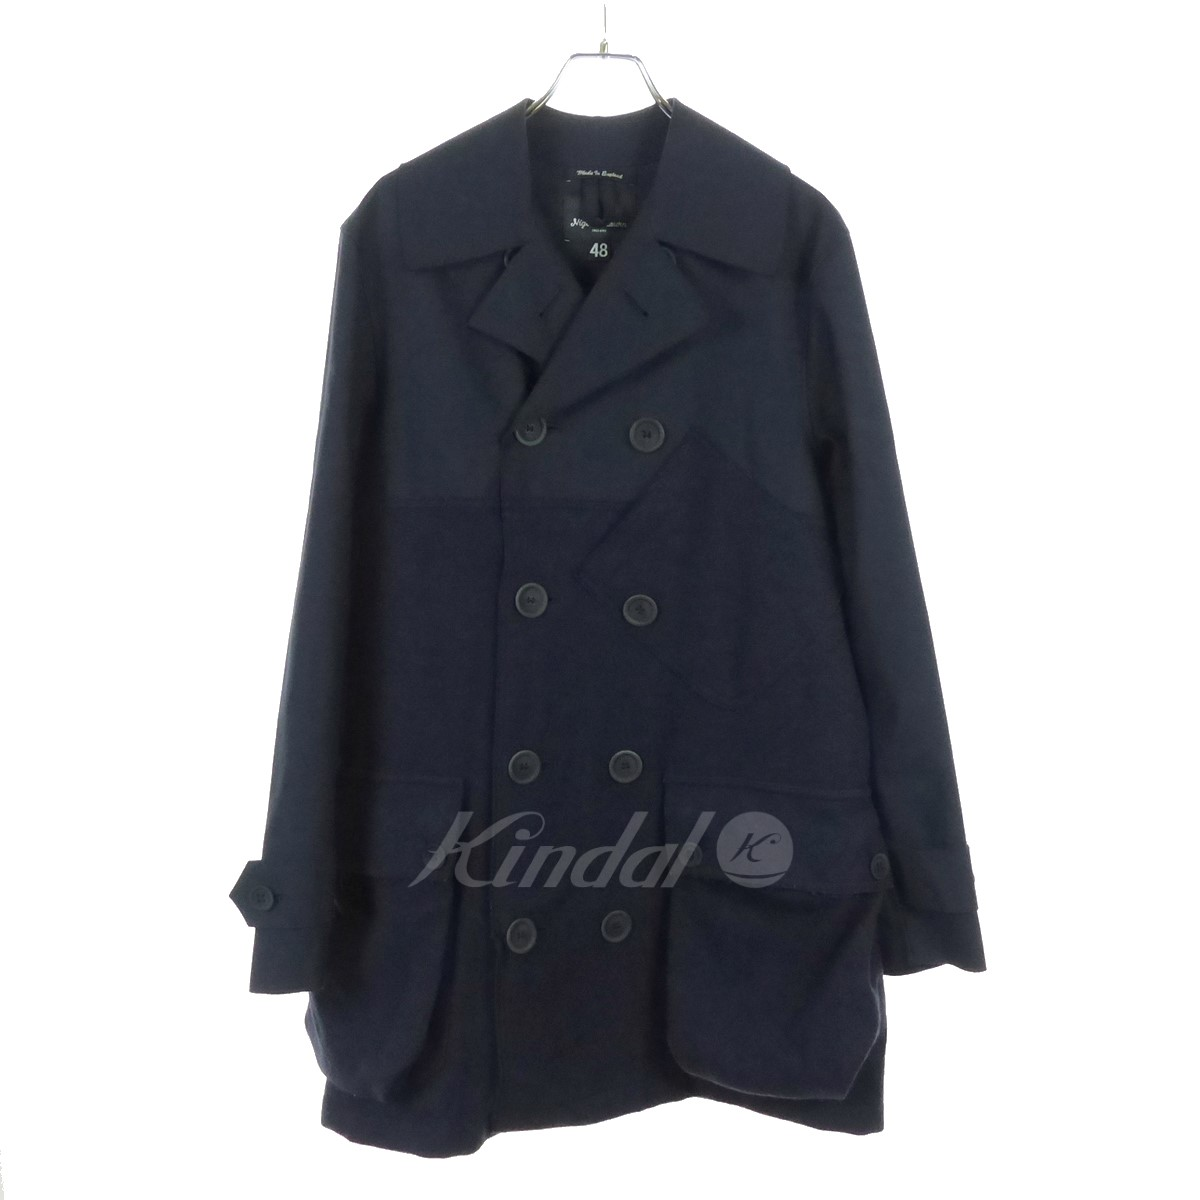 【中古】NIGEL CABOURN×MACKINTOSH 切替コート 【送料無料】 【011655】 【KIND1550】